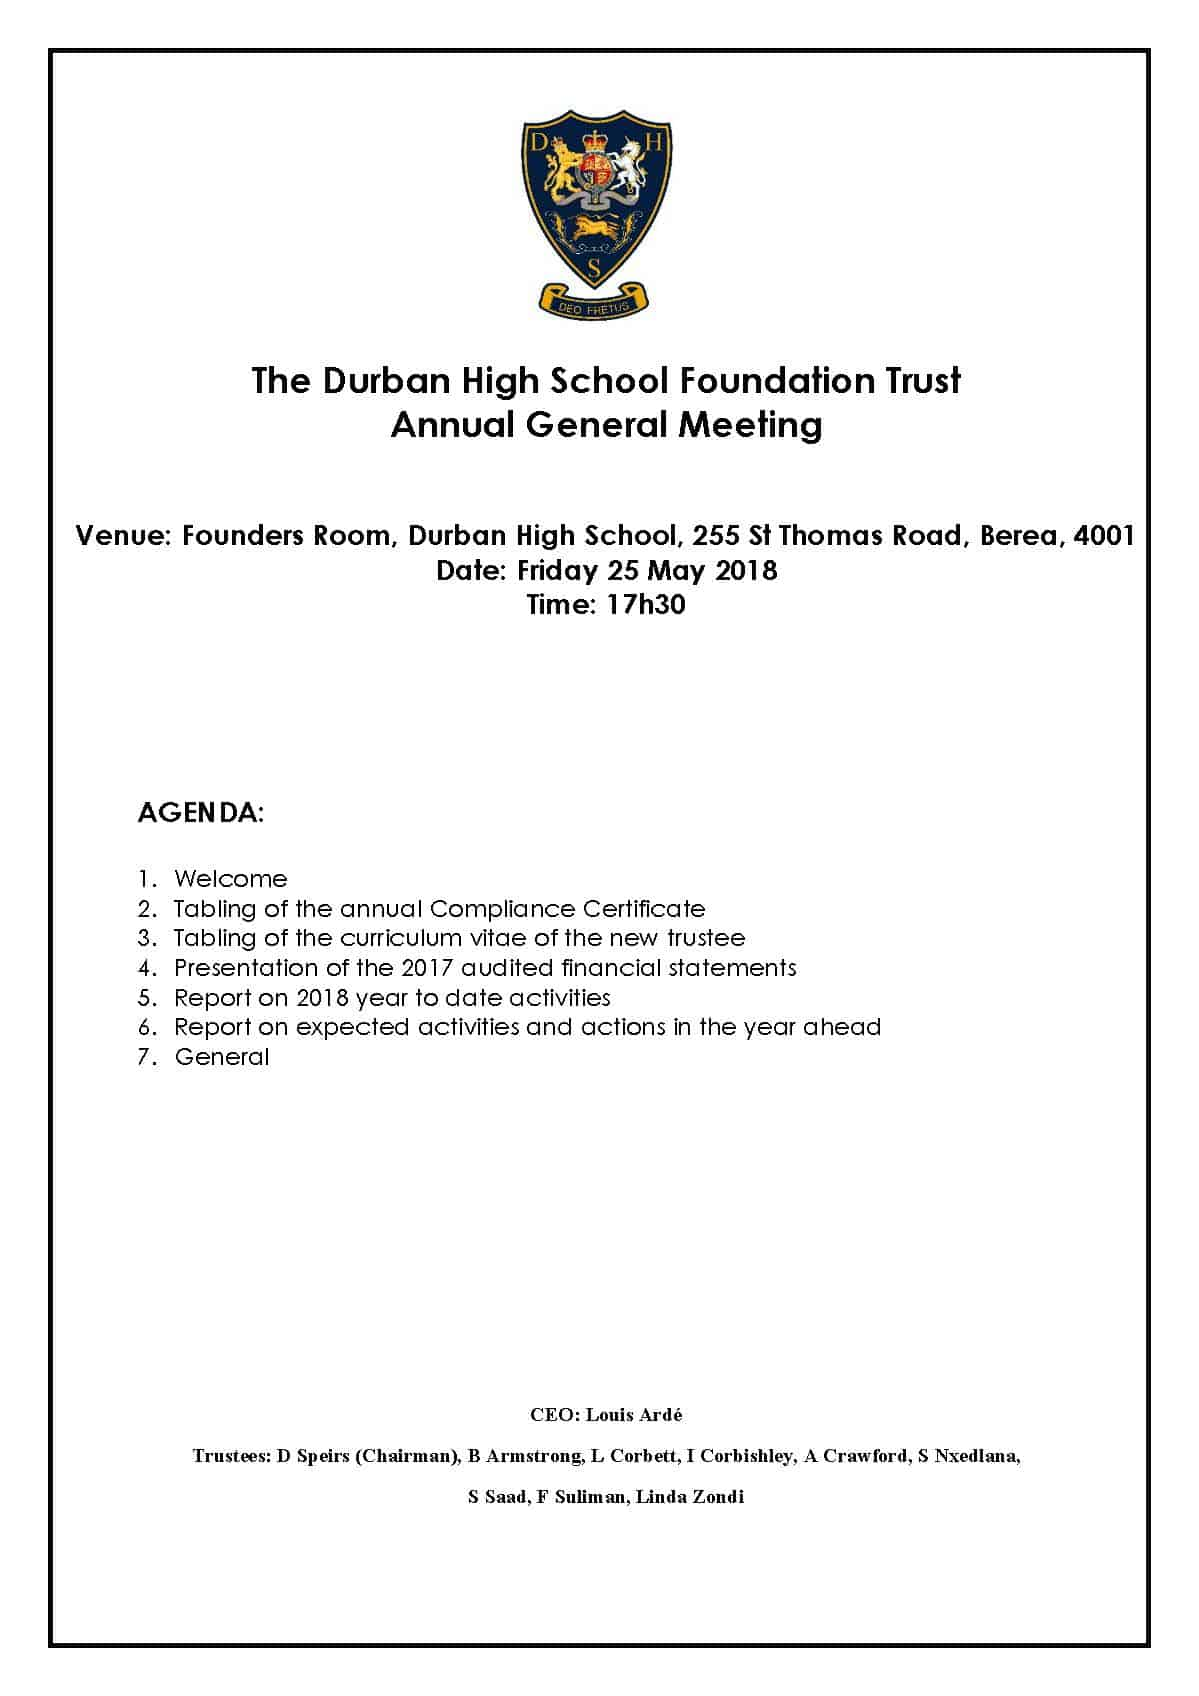 DHS Foundation Trust AGM 25 May 2018